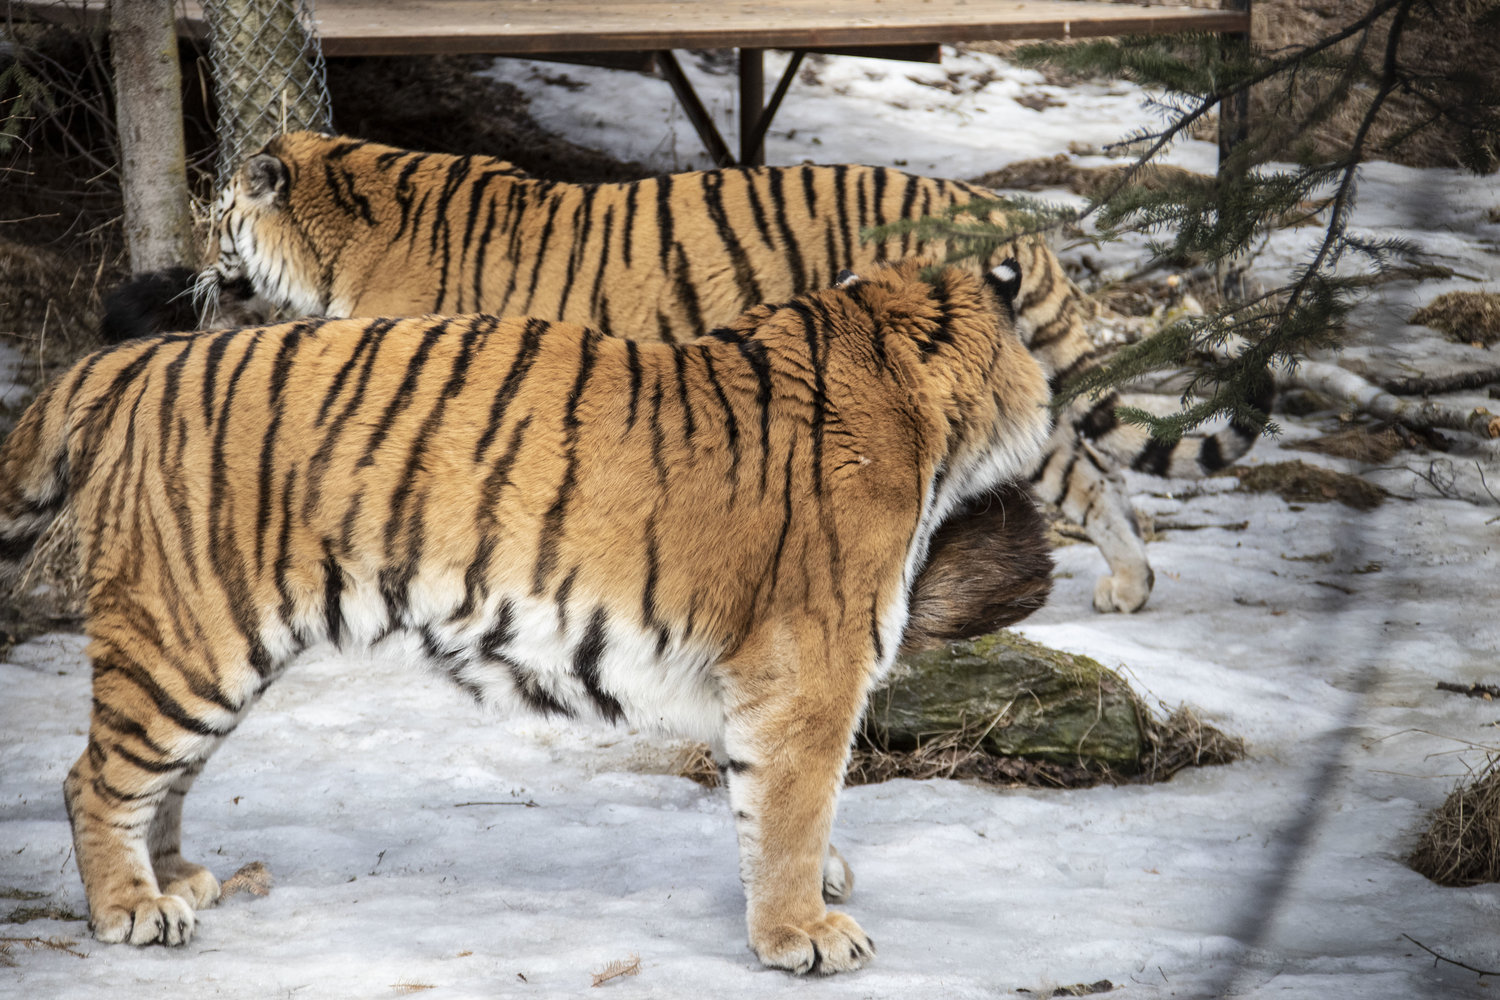 Critter Chat: Tigers — The Alaska Zoo